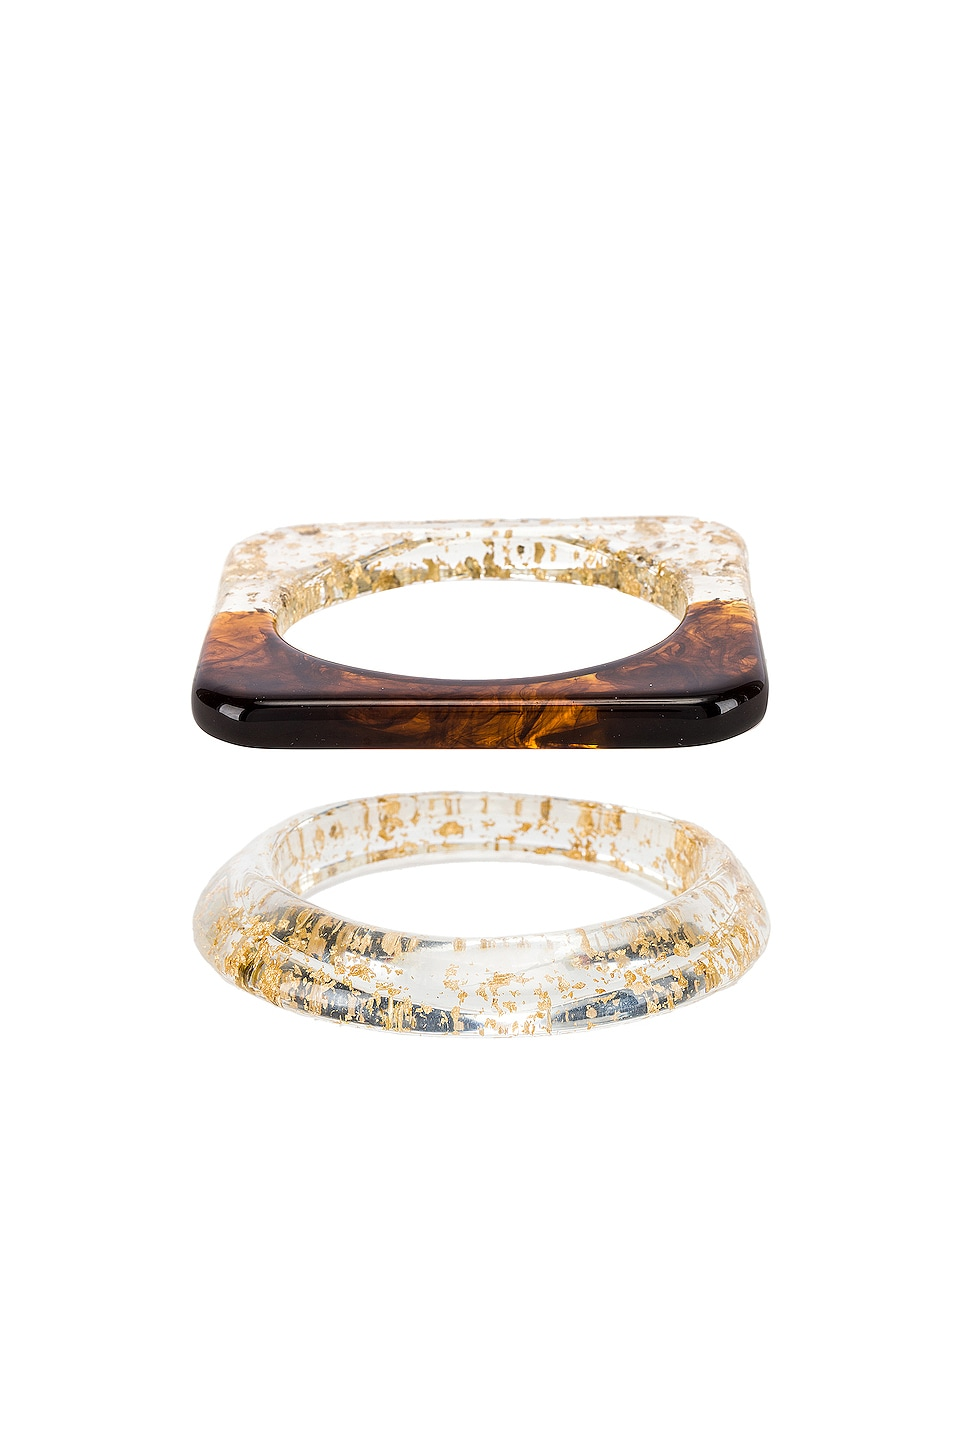 Amber Sceats Hart & Sahi Bracelet Set in Gold Multi